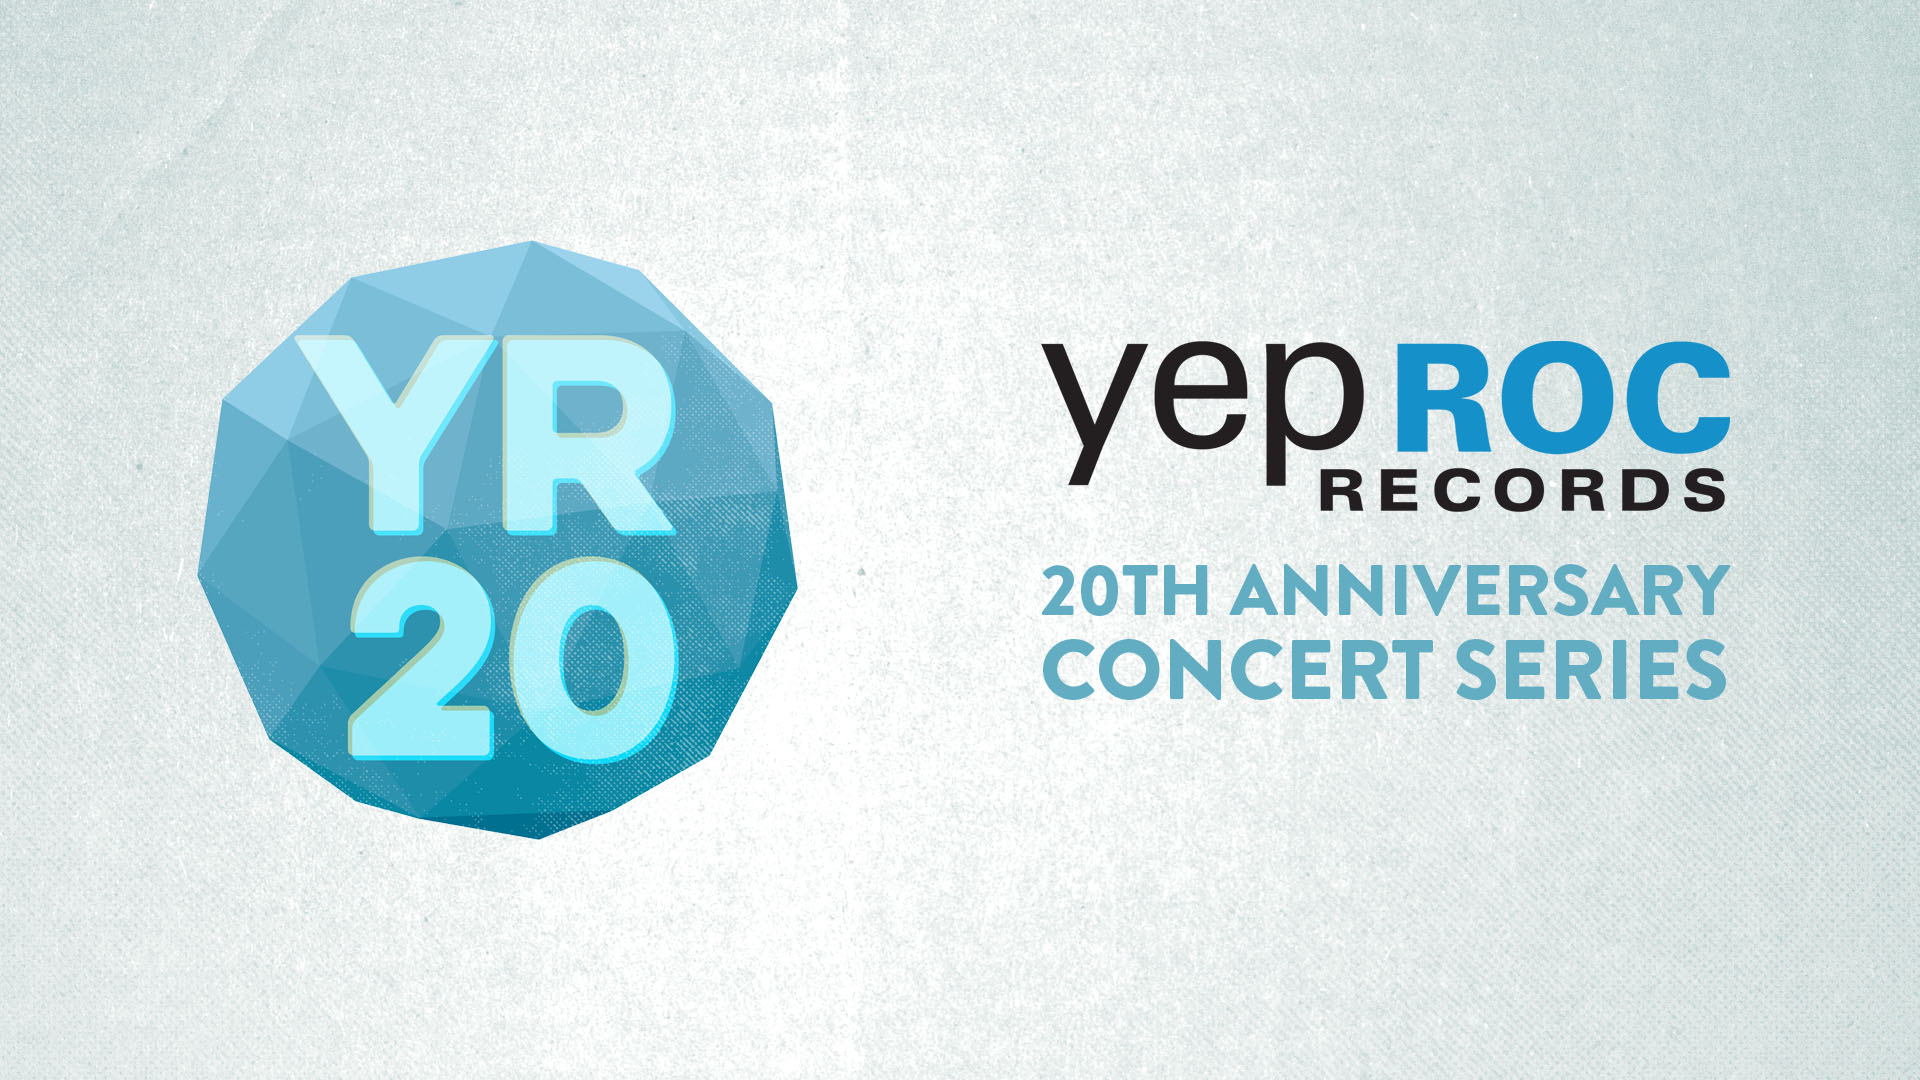 yepRoc RECORDS 20th ANNIVERSARY - October 21,2017 - 12noon